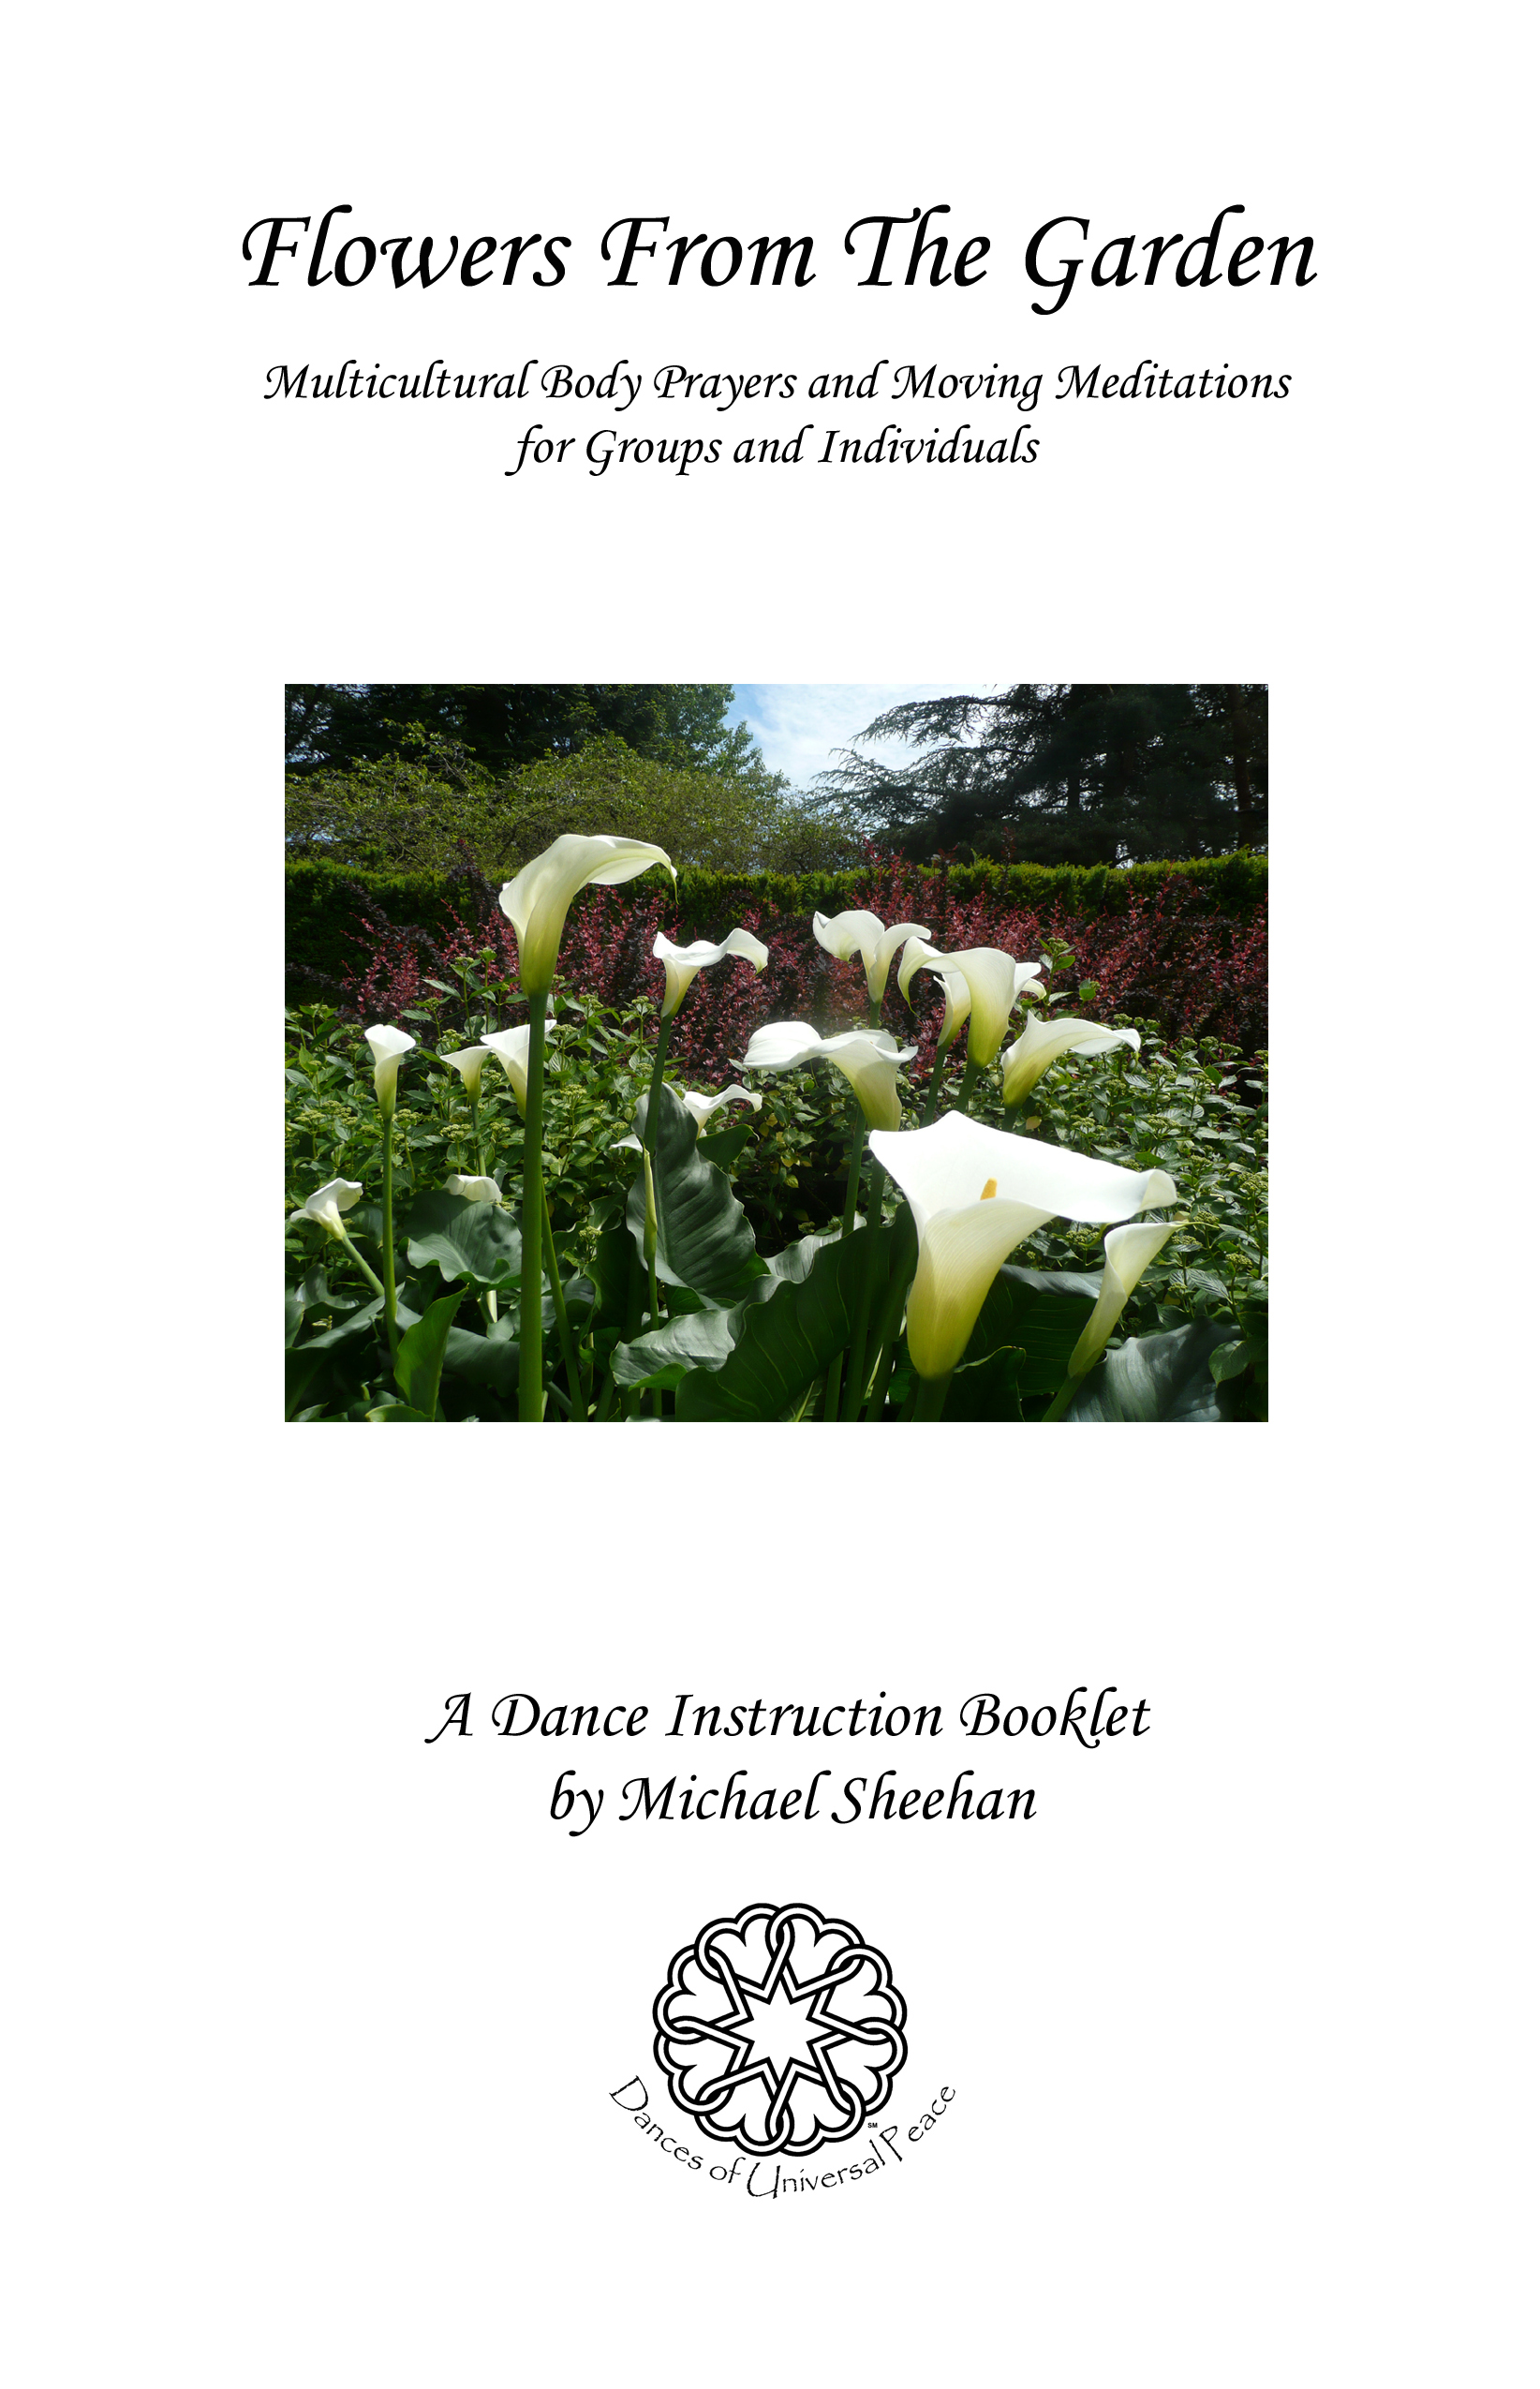 copy23_Booklet - Flowers From The Garden